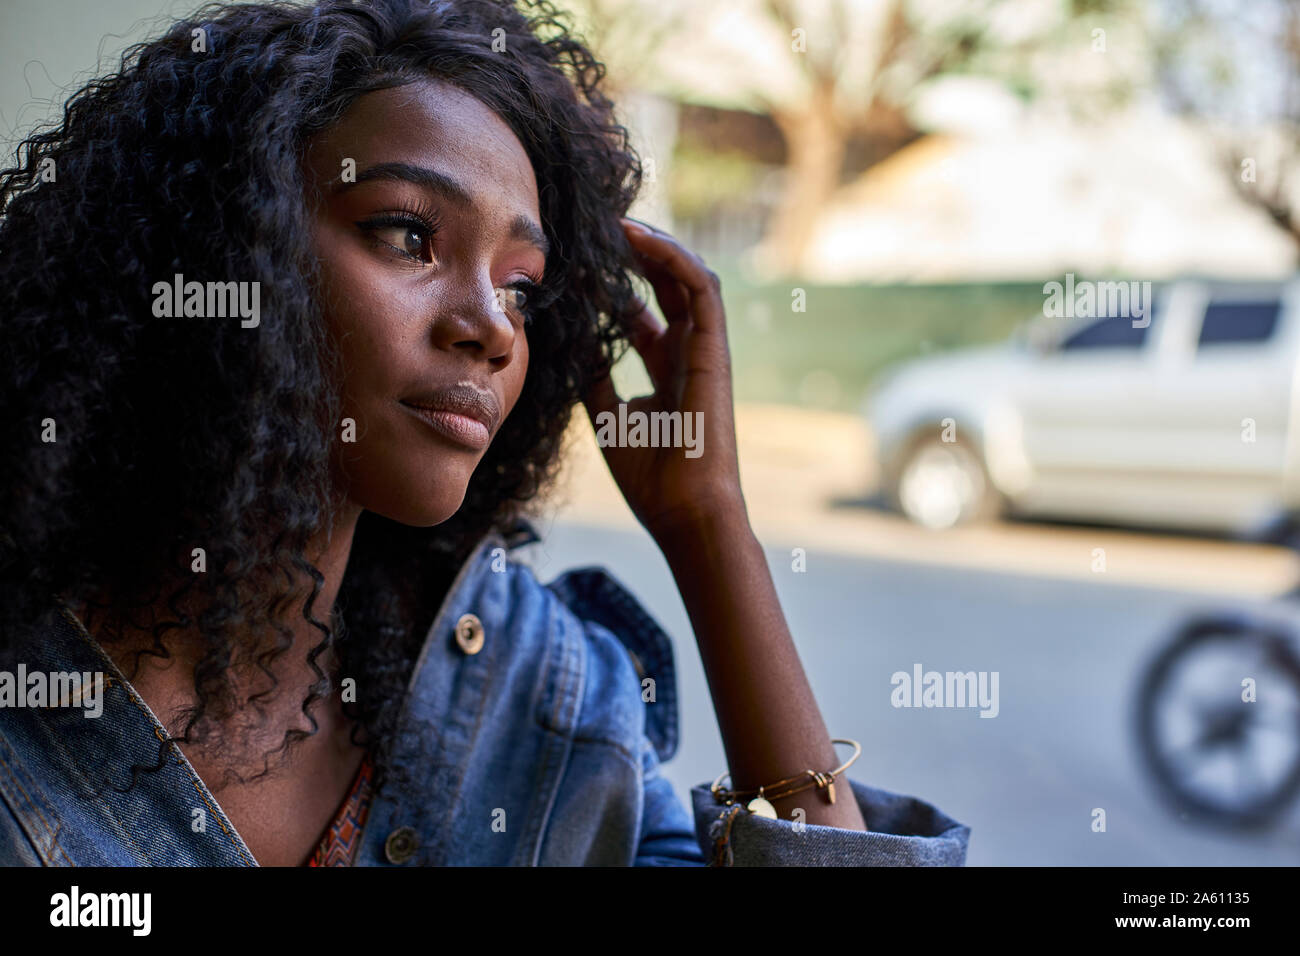 Portrait of young African woman in a cafe, looking out of window Stock Photo